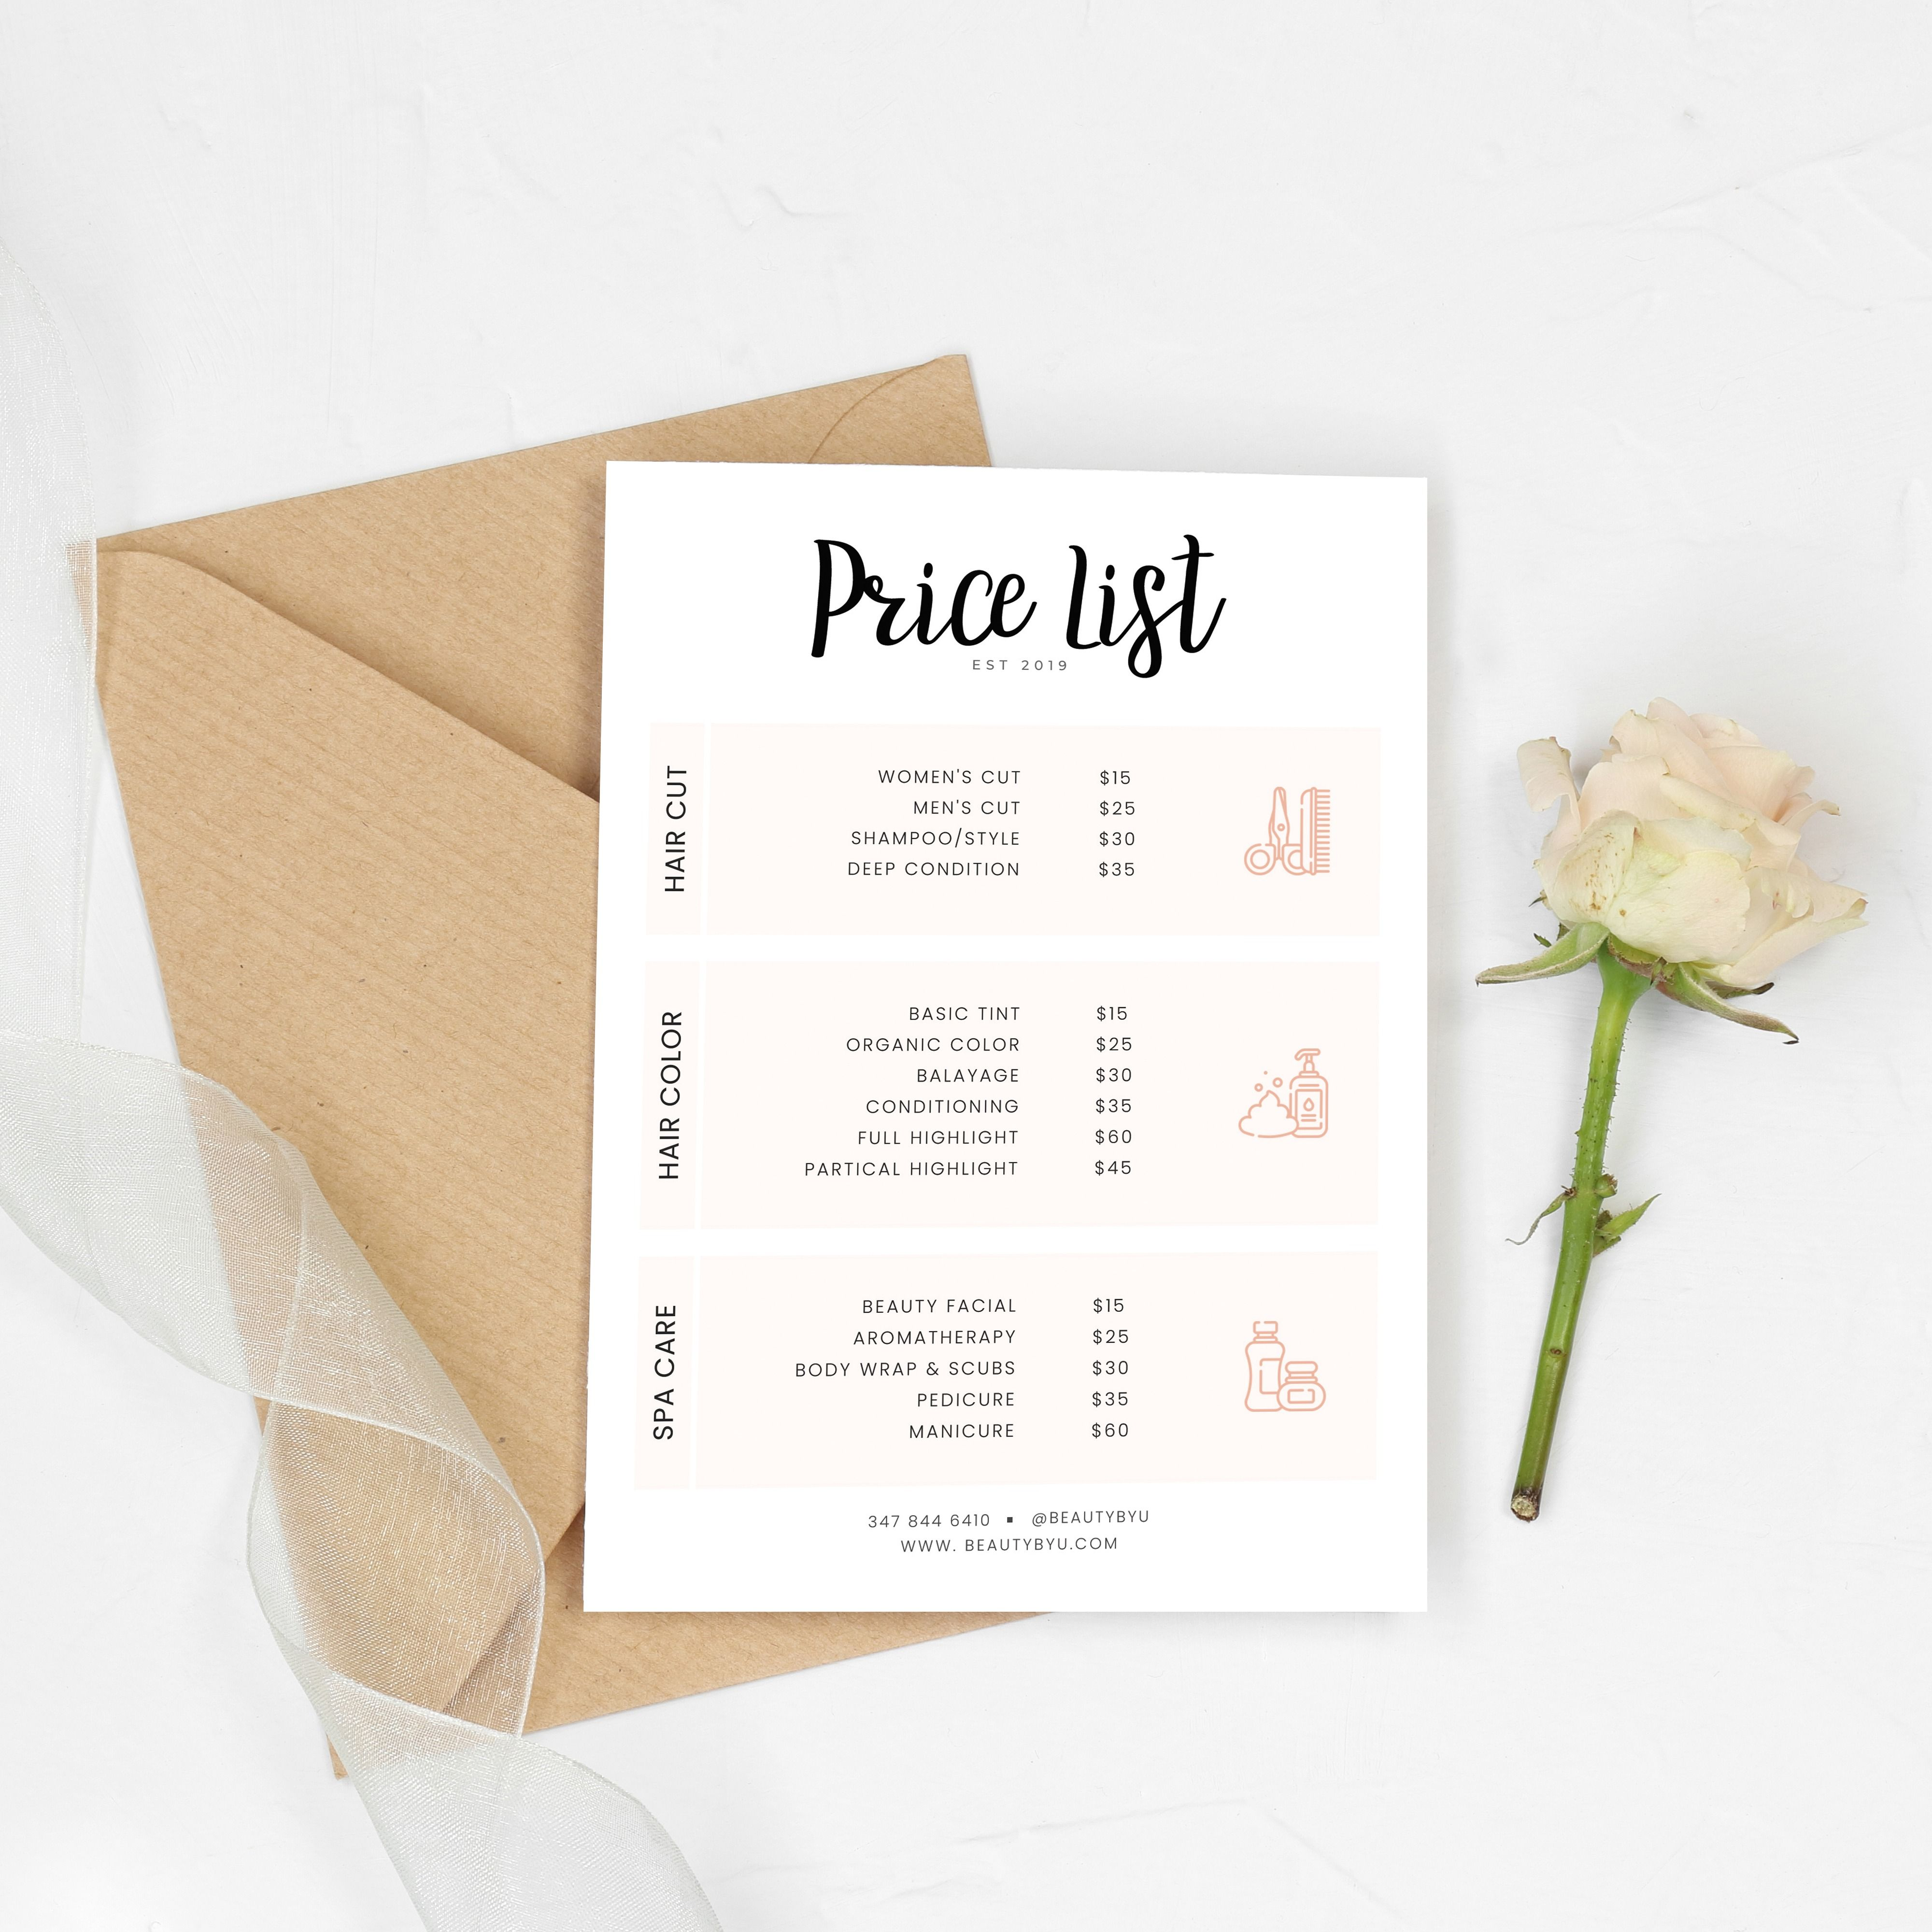 Salon and Spa Pricing PSD Template, Beauty Price List